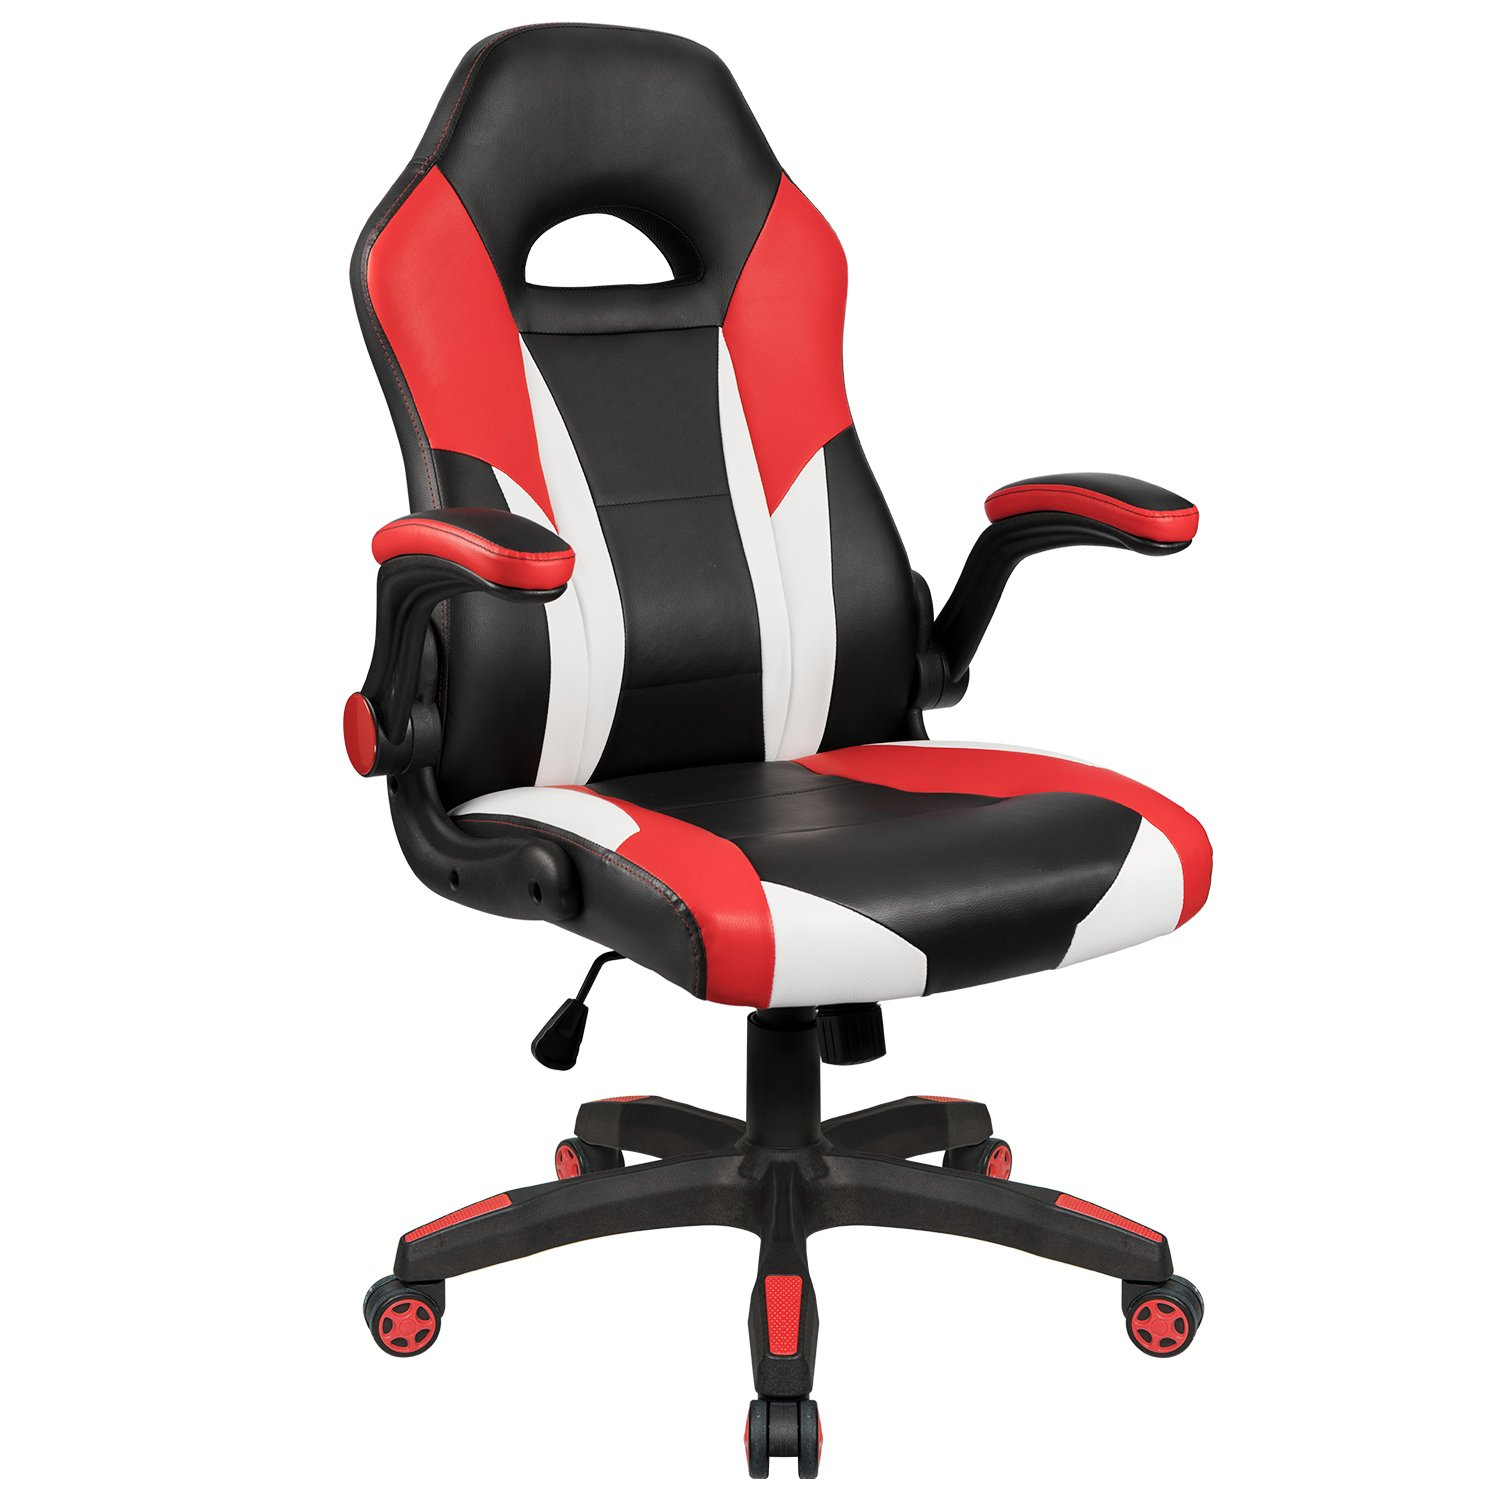 Homall PC Gaming Chair Racing Office Chair Ergonomic Computer Desk Chair Swivel Chair PU Leather High Back Chair for Adults with Flip Up Padded Arms (Red) by Homall